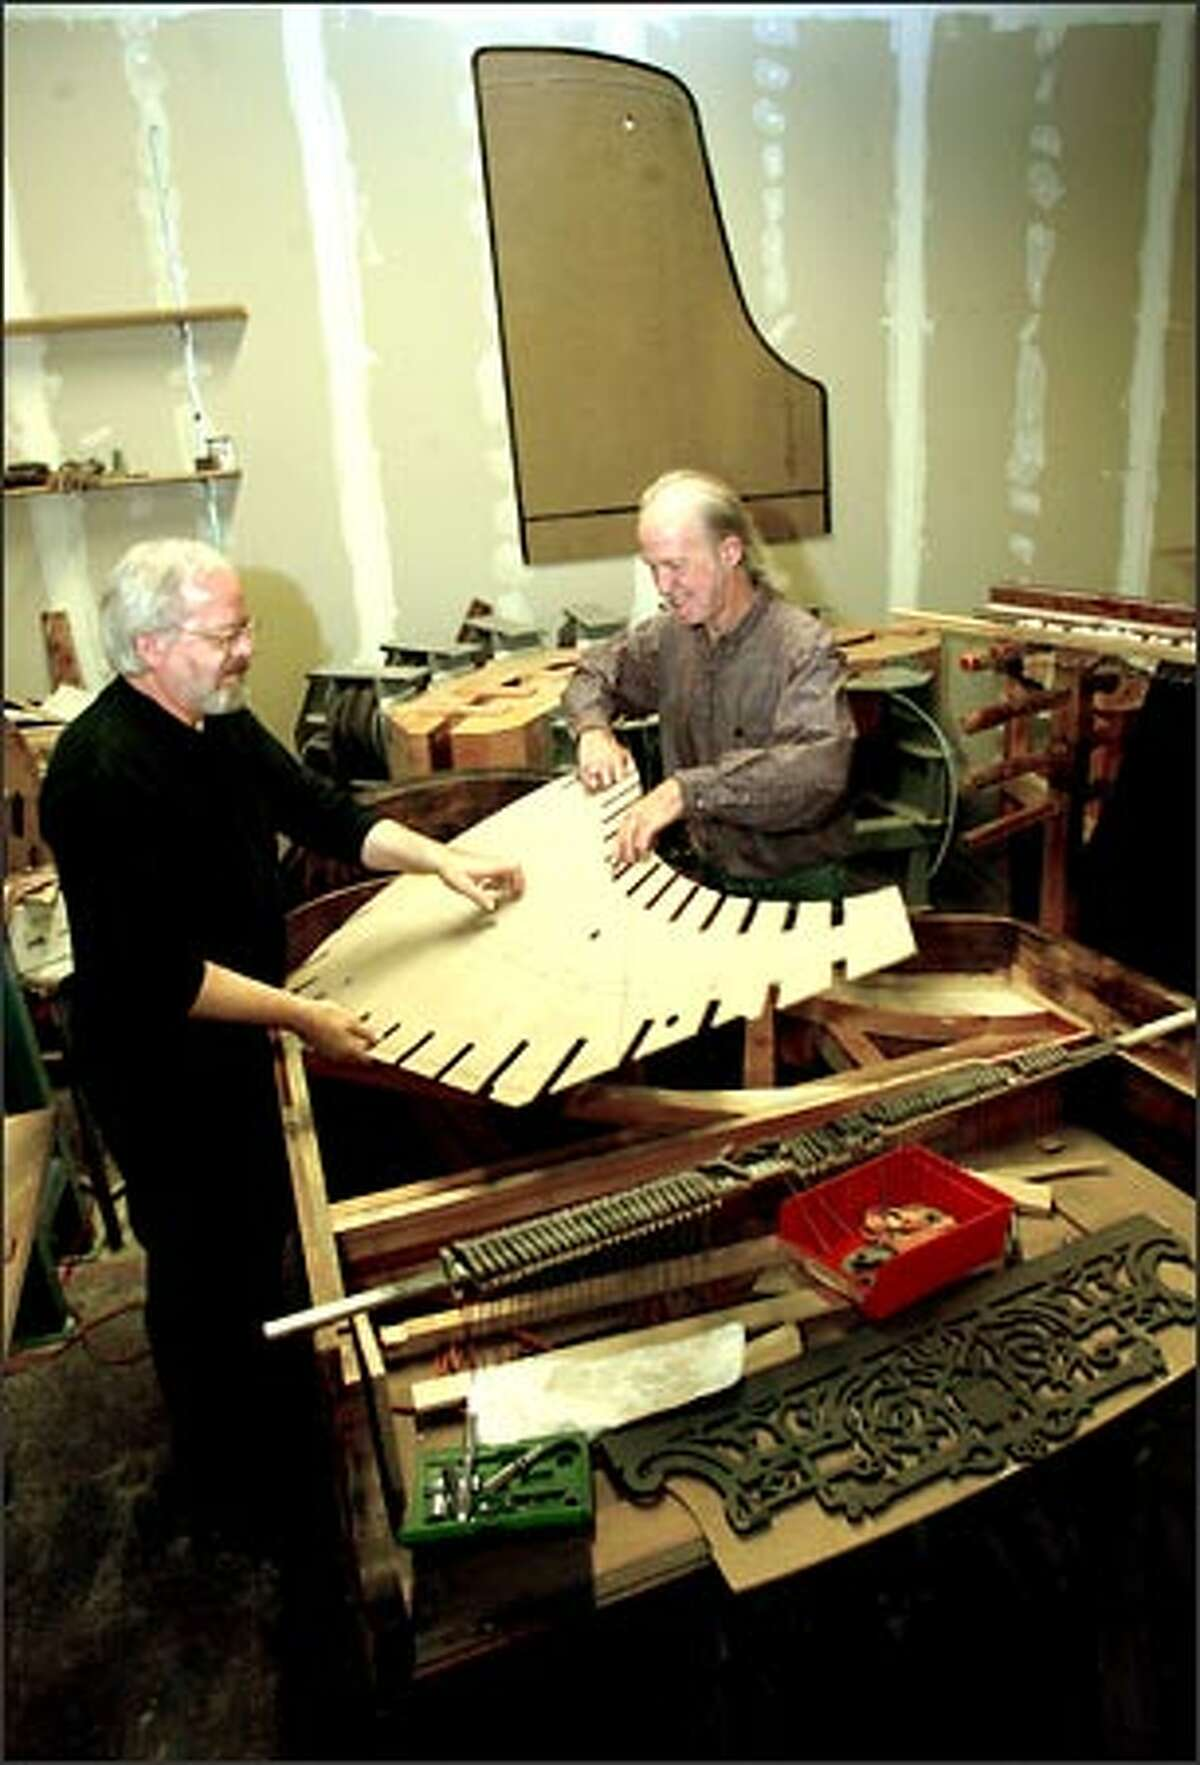 Fandrich, left, and business partner Larry Graddy position a soundboard template into an 1889 Decker piano they are remanufacturing at their PianoBuilders NW shop in Hoquiam. Fandrich often will rebuild old pianos in new ways.